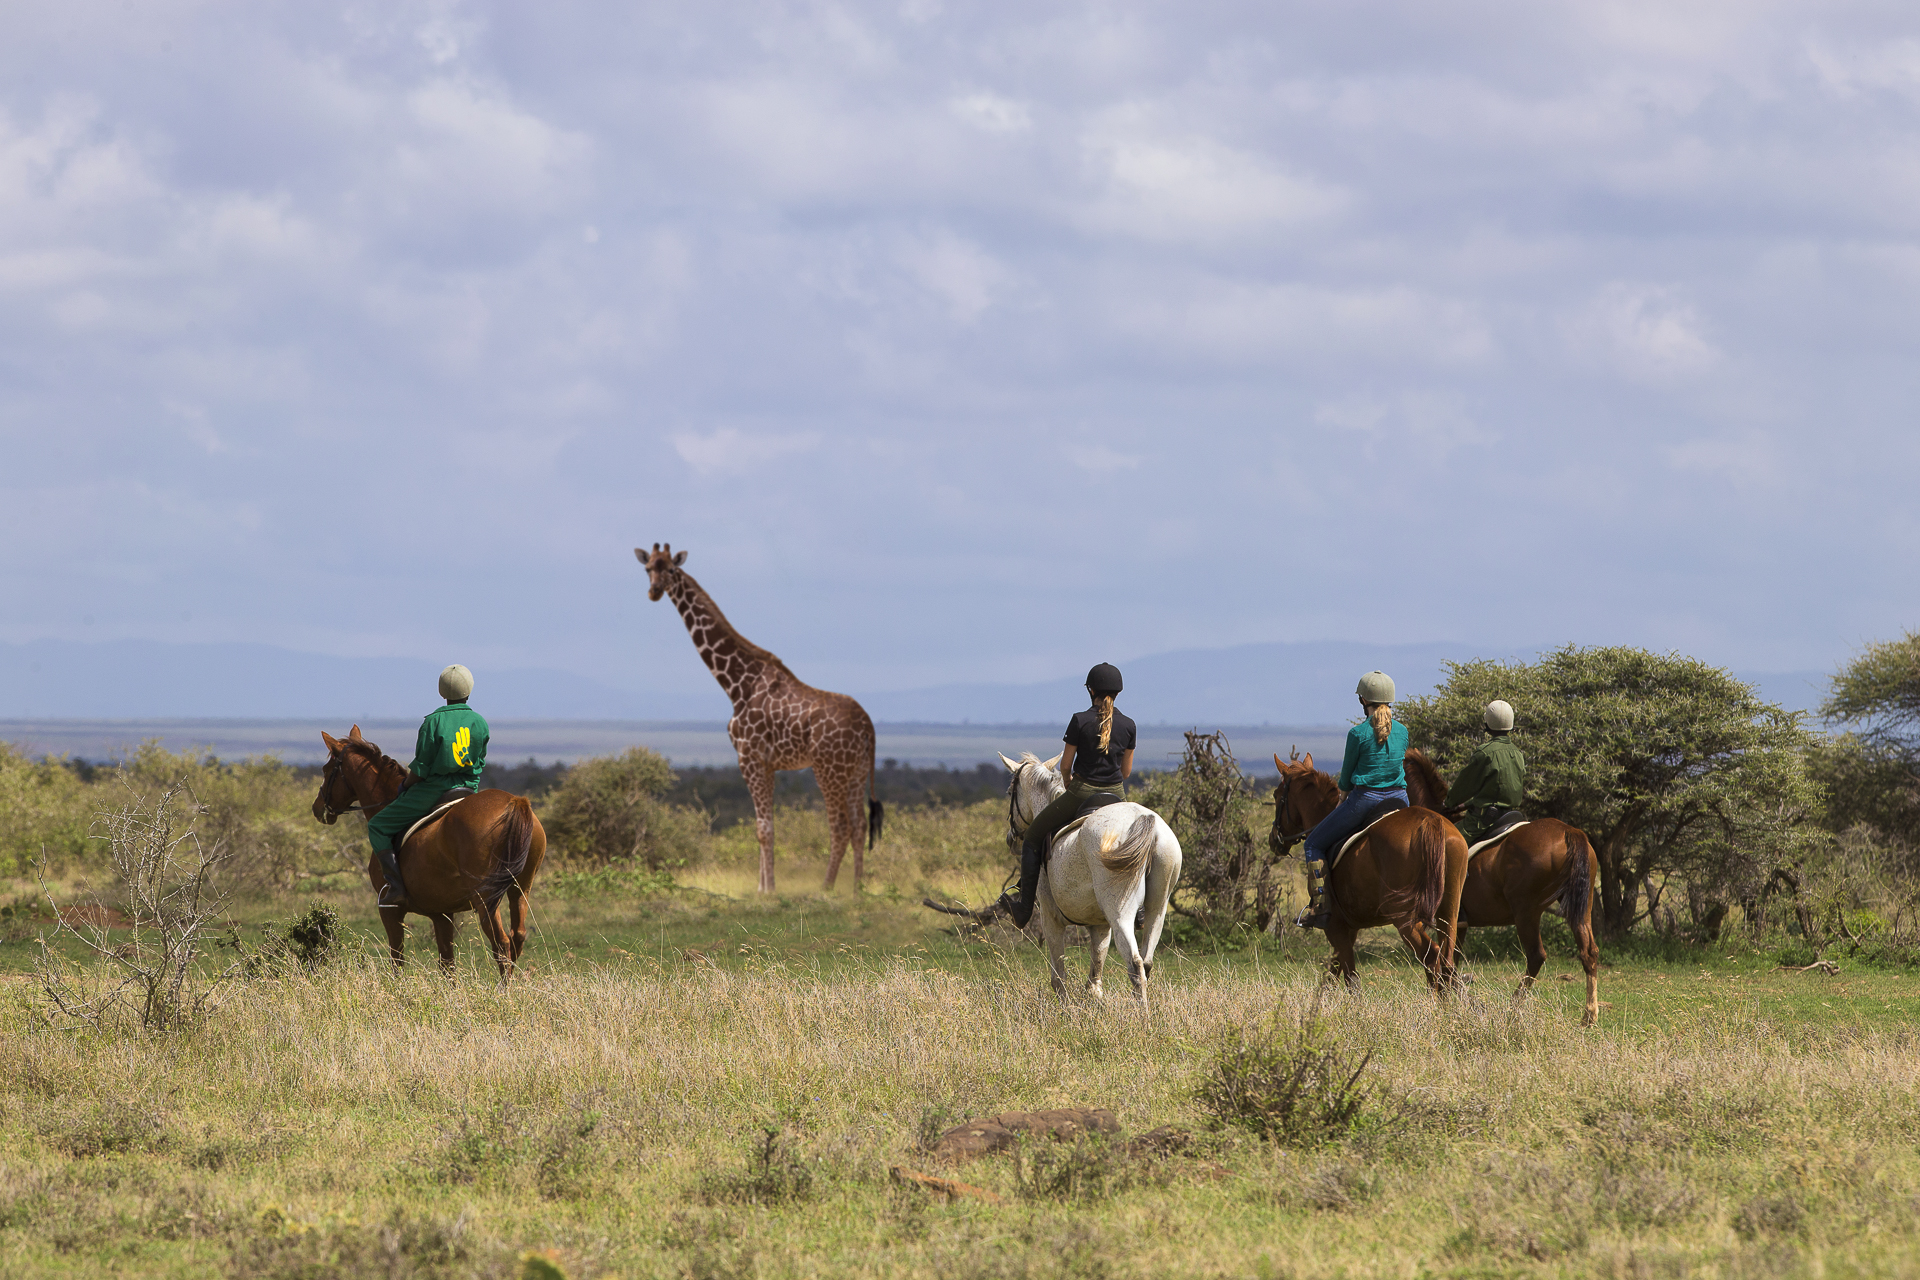 Day 01: Arrival and onto Loisaba Conservancy